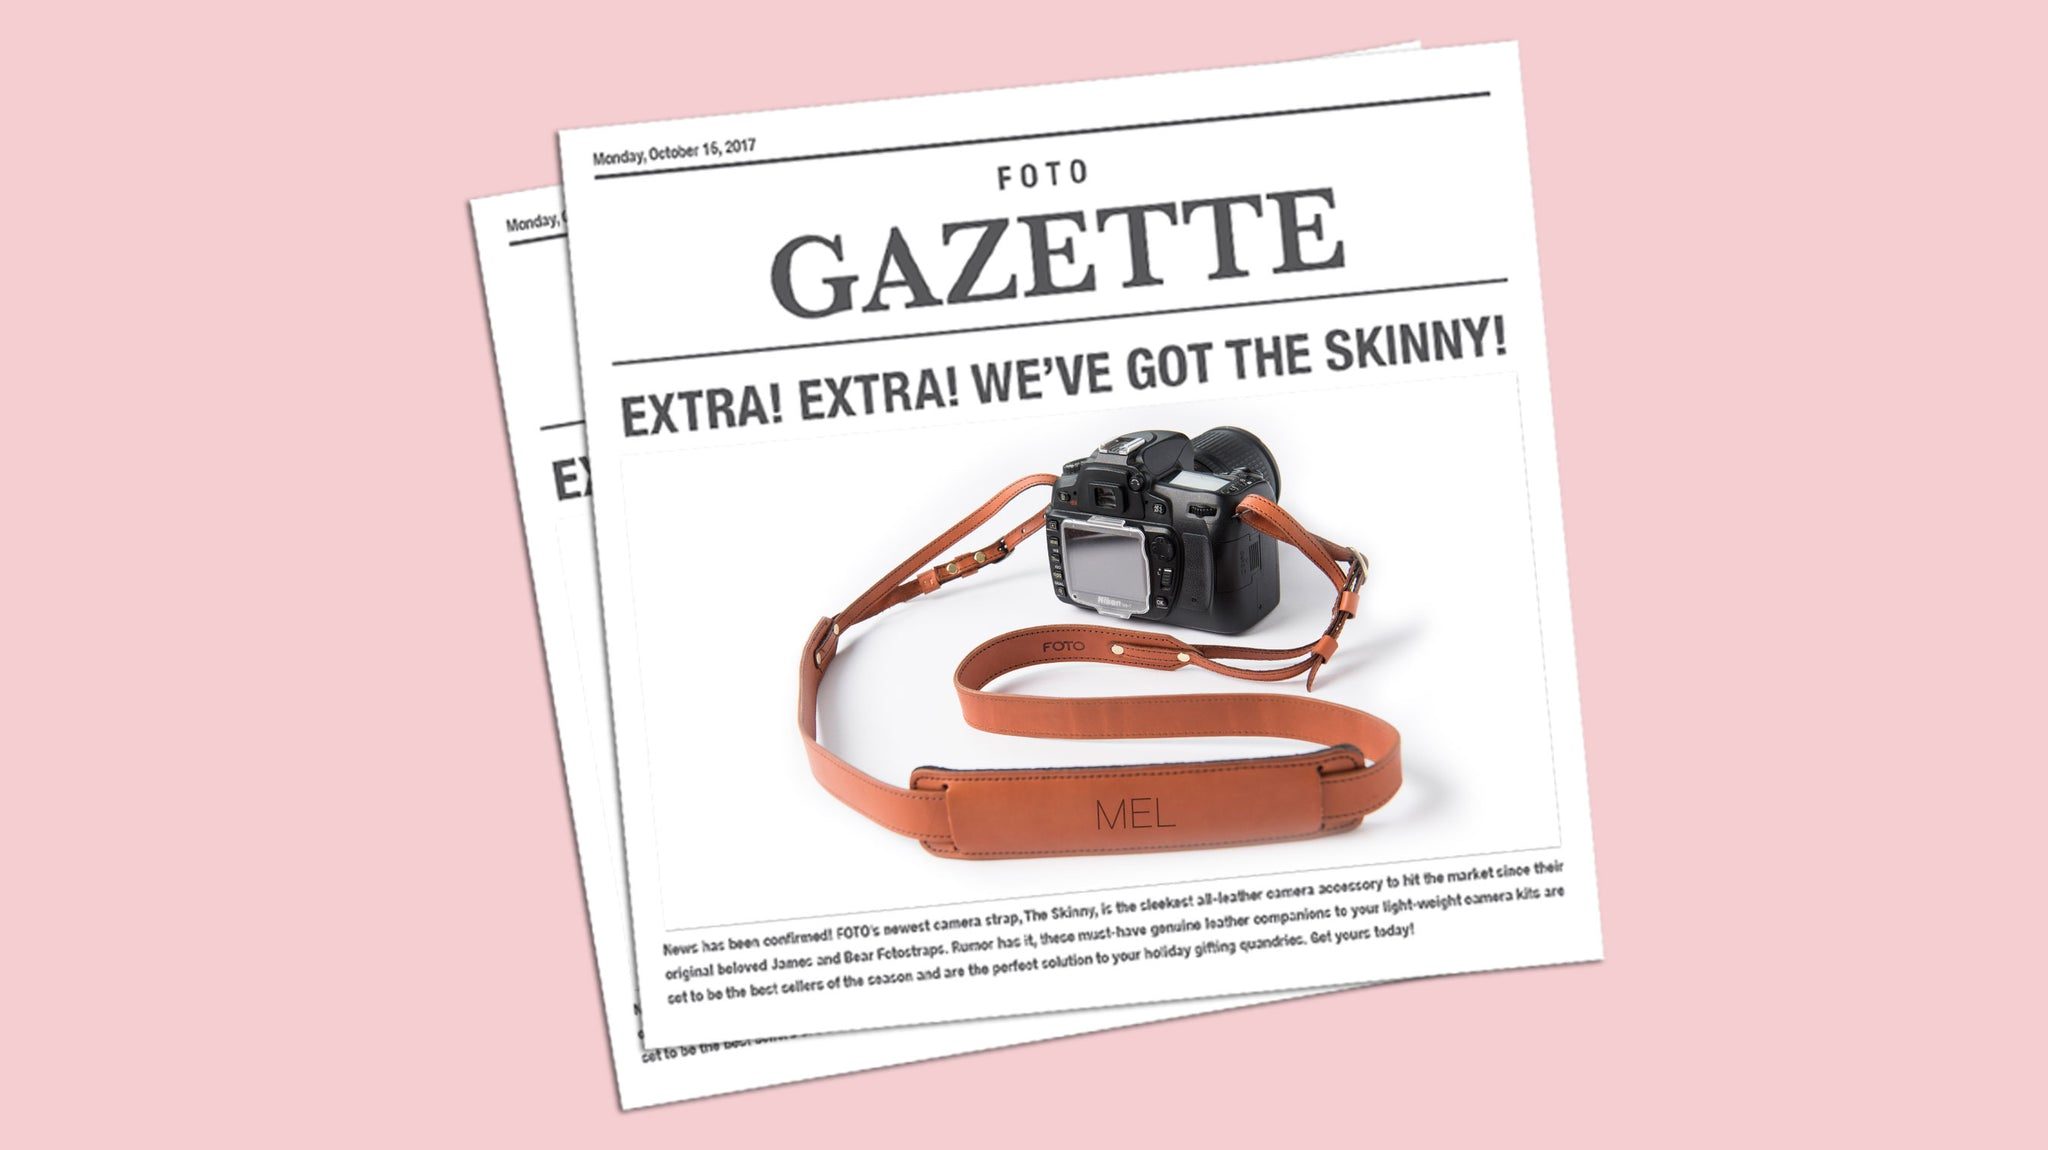 FOTO Blog | The Skinny on our Newest Camera Strap